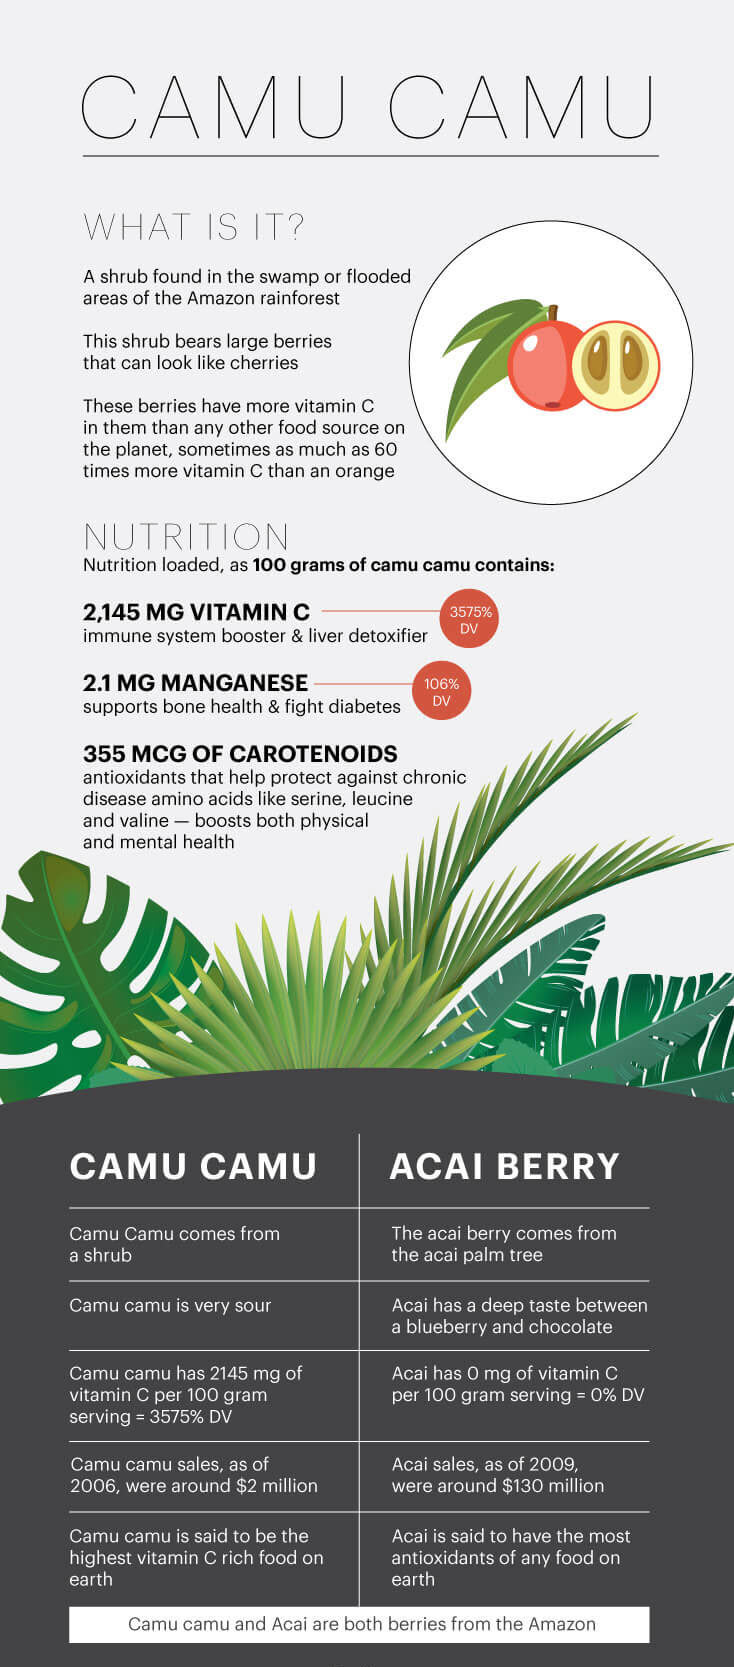 What is camu camu? - MKexpress.net